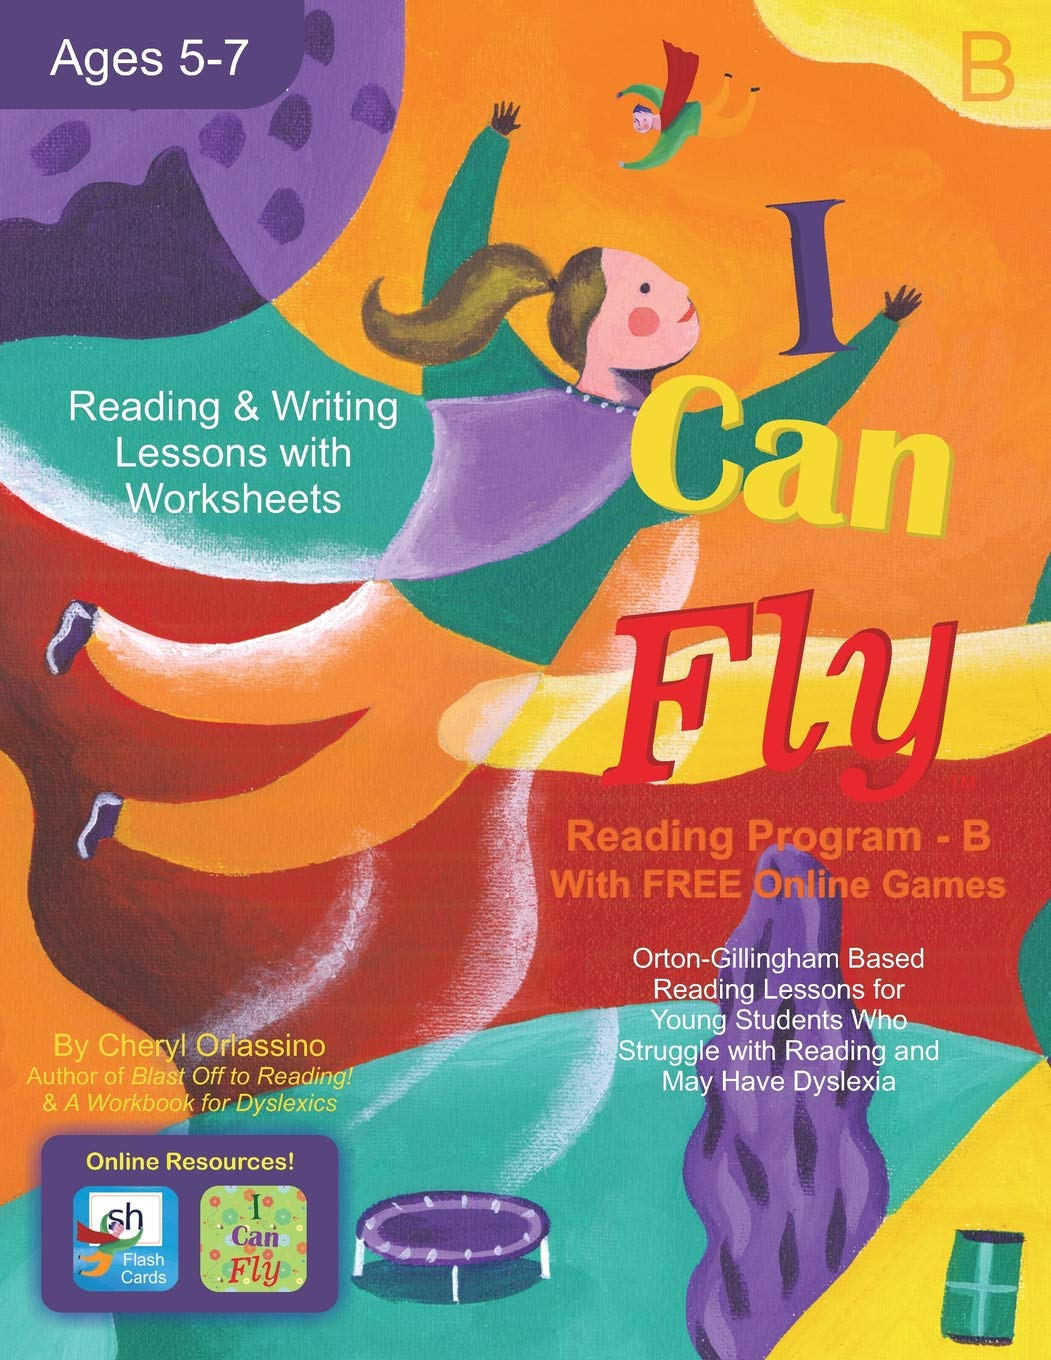 I Can Fly - Reading Program - B, With FREE Online Games ...